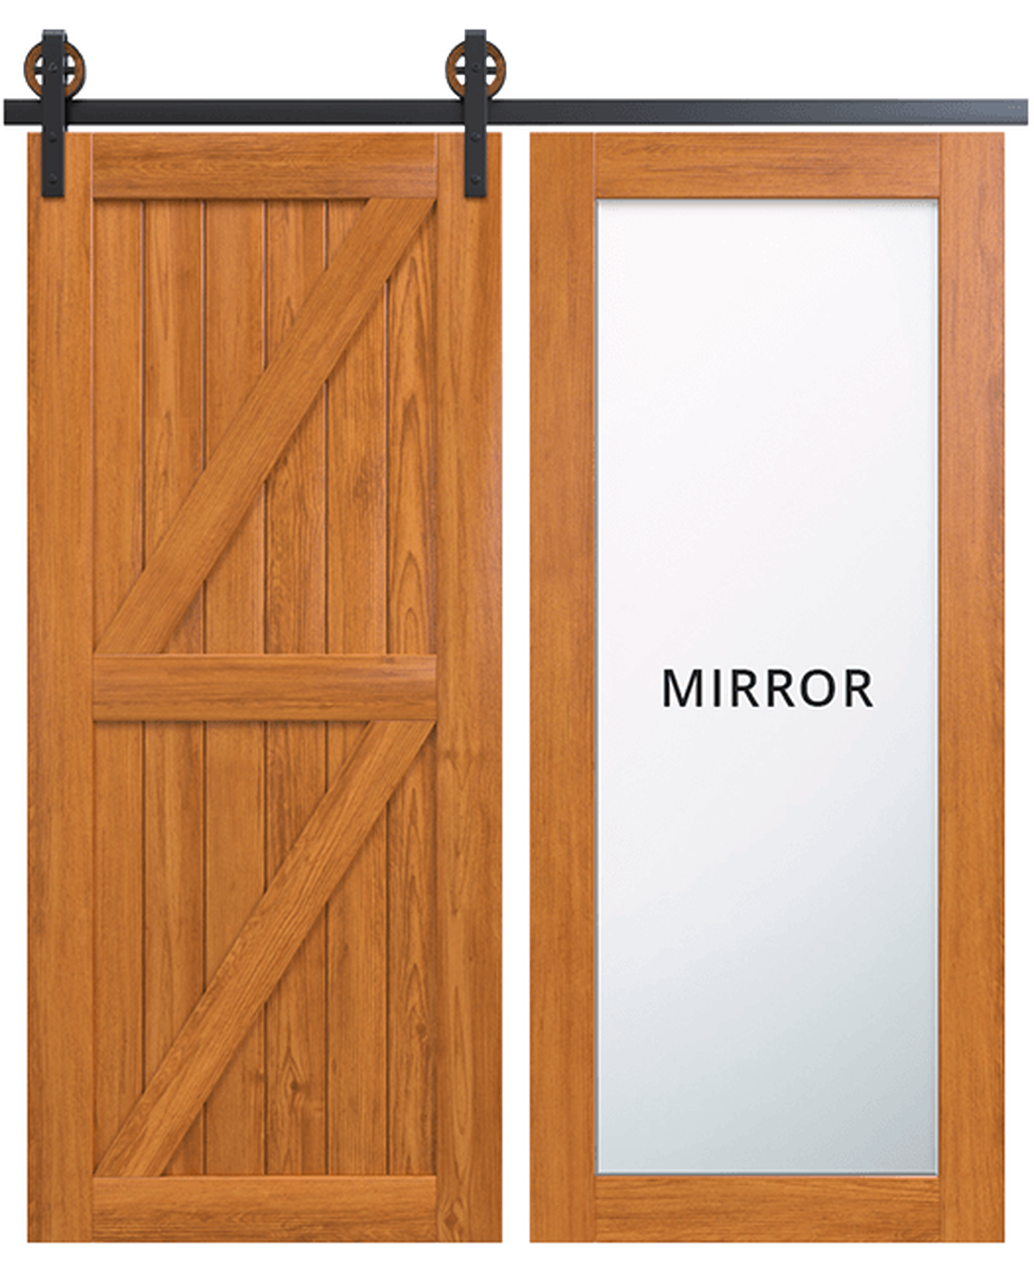 stowe wood full mirror panel stained double z panel barn door